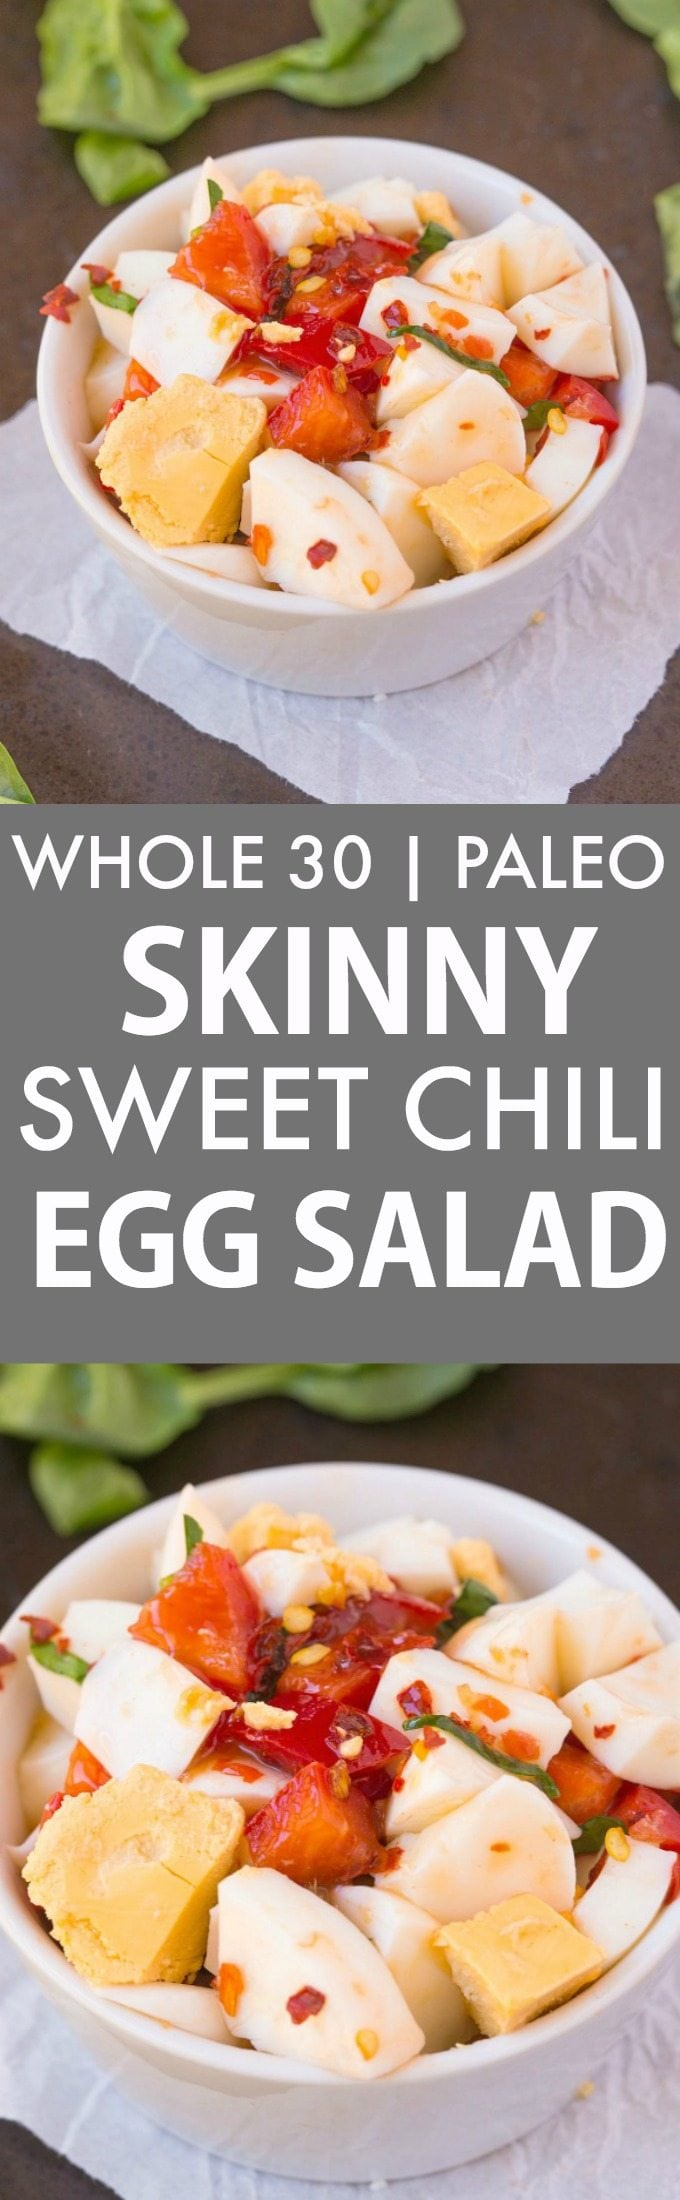 Whole 30 Skinny Sweet Chili Egg Salad (Whole30, Paleo, Gluten Free)- Quick, easy and delicious, this mouthwatering and simple egg salad is a huge hit- Low carb and low calorie! {paleo, gluten free, grain free, whole 30}- thebigmansworld.com